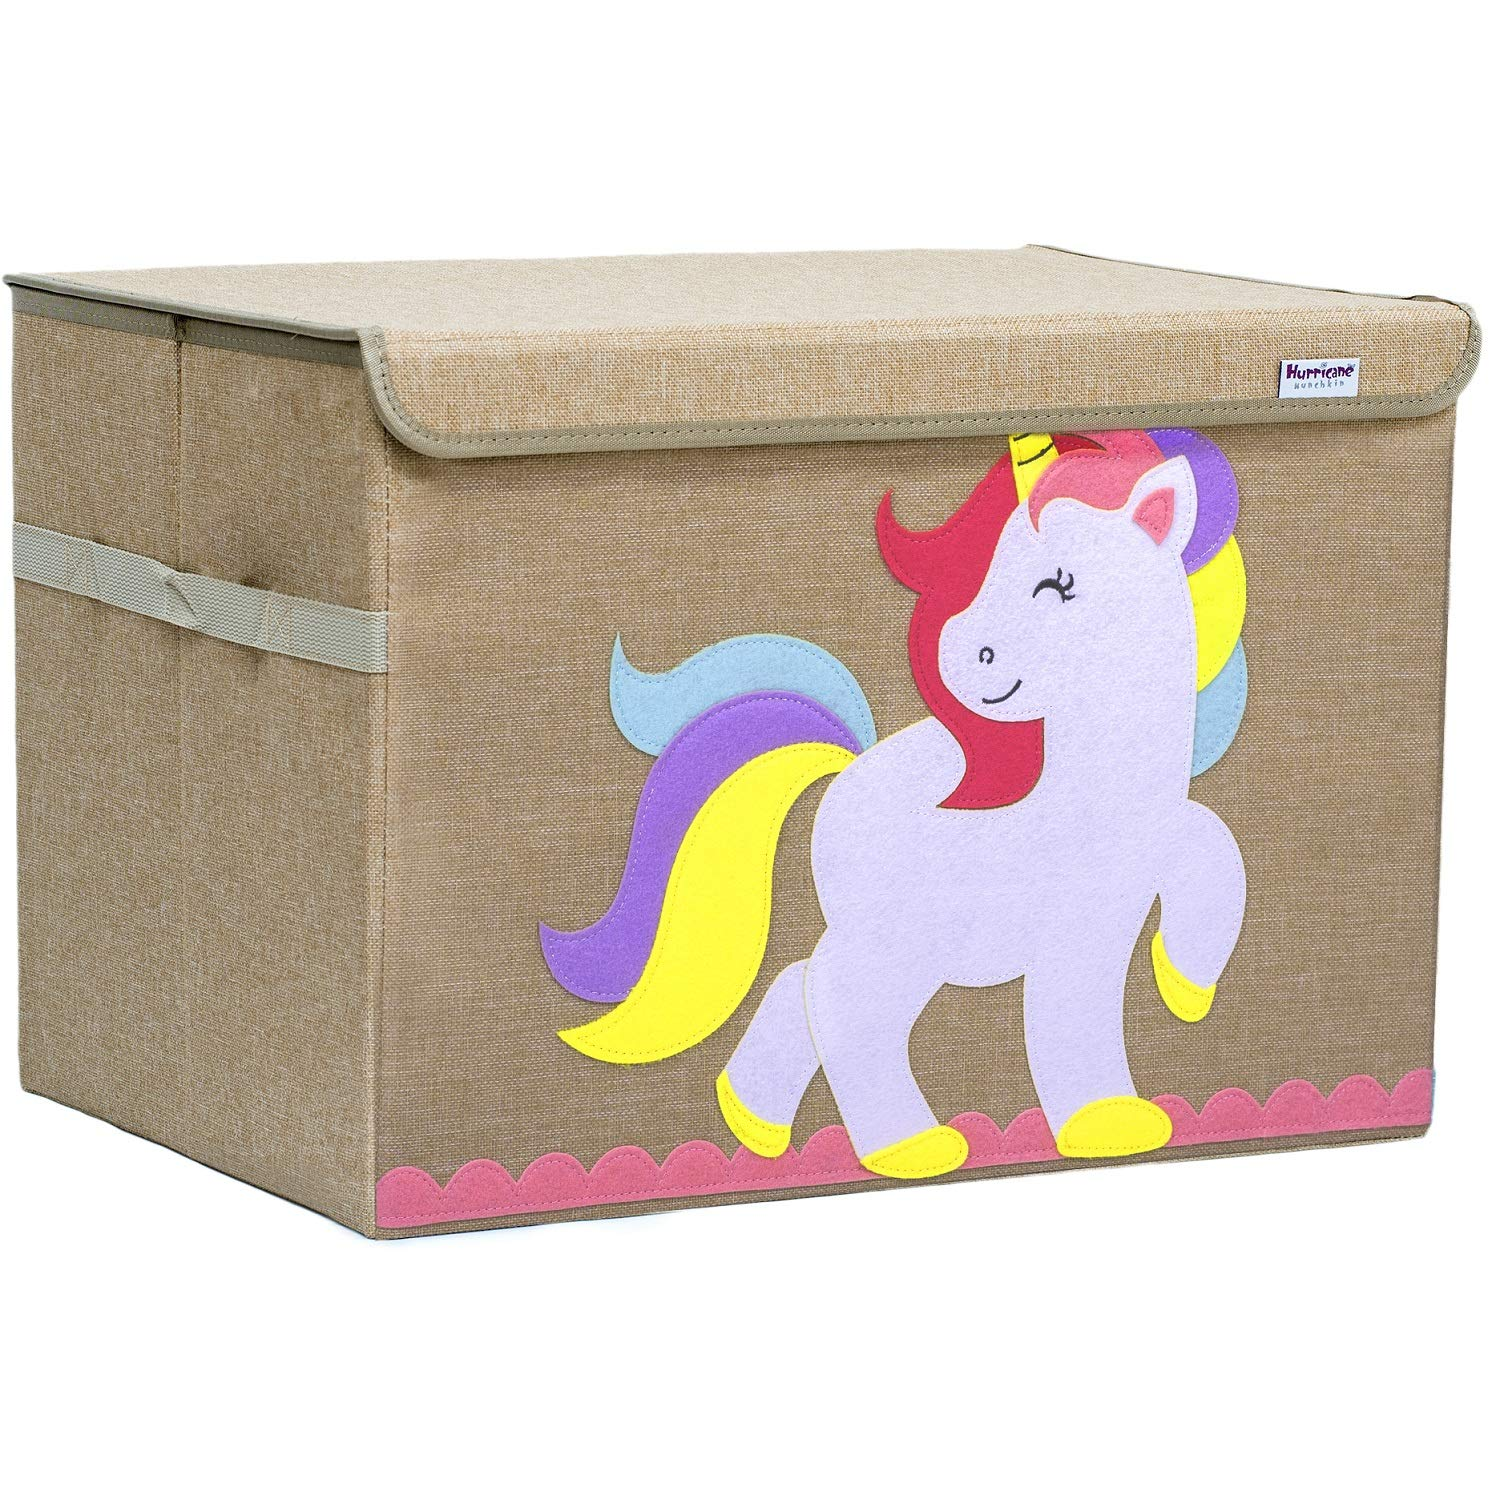 Hurricane Munchkin Large Toy Chest. Canvas Soft Storage Bin with Lid for Toy Storage, Books, Stuffed Animal, Clothes. Princess Girls Toy Box for Girls Nursery, Bedroom 14''x 15''x 21'' (Unicorn) by Hurricane Munchkin